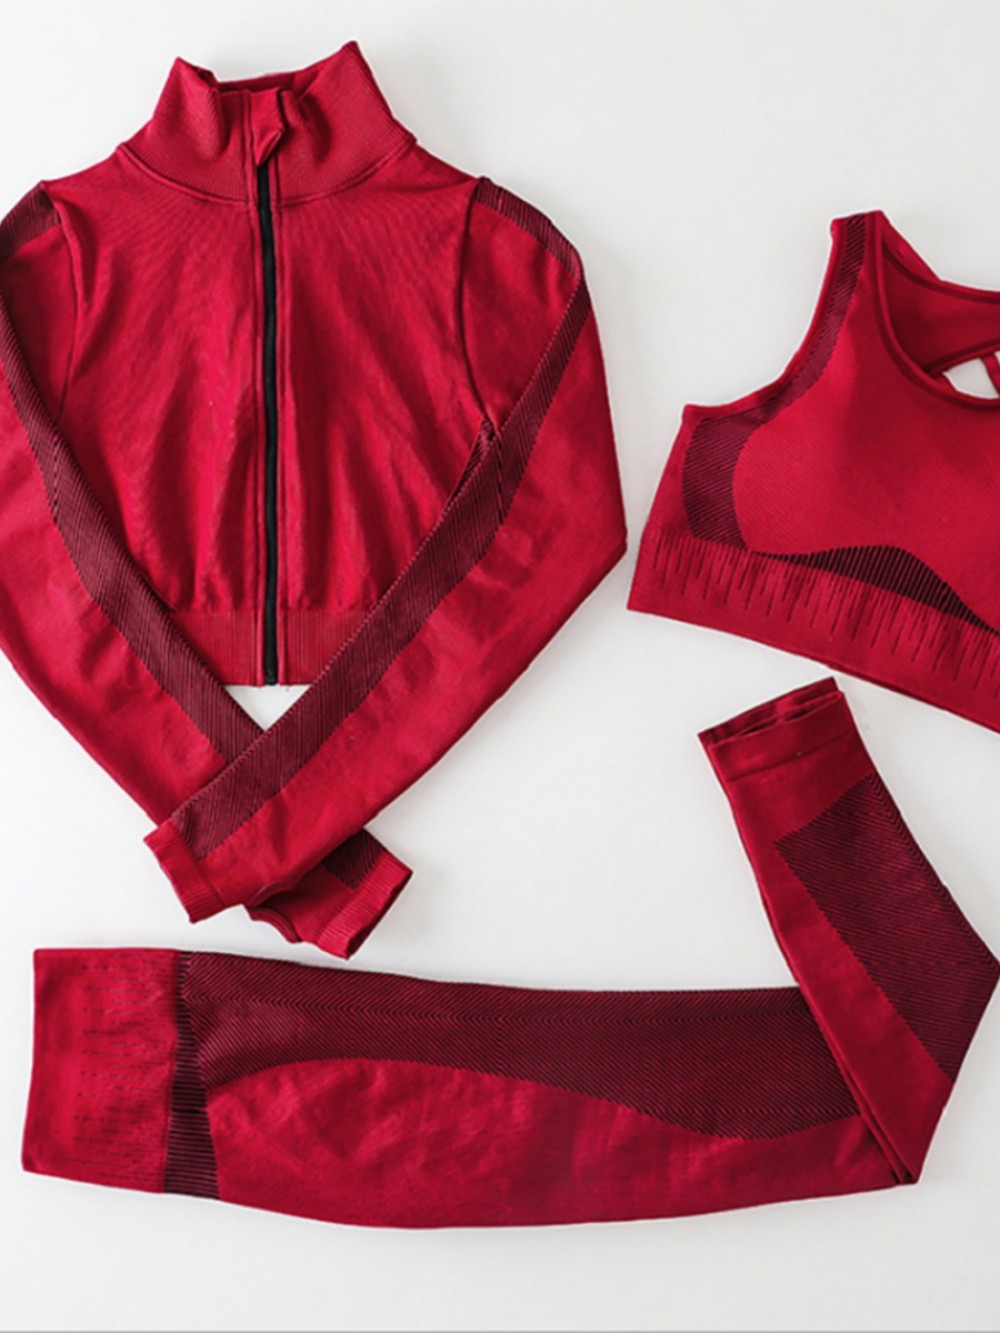 Red 3 Pieces Workout Set Seamless Zipper Refined Outfit